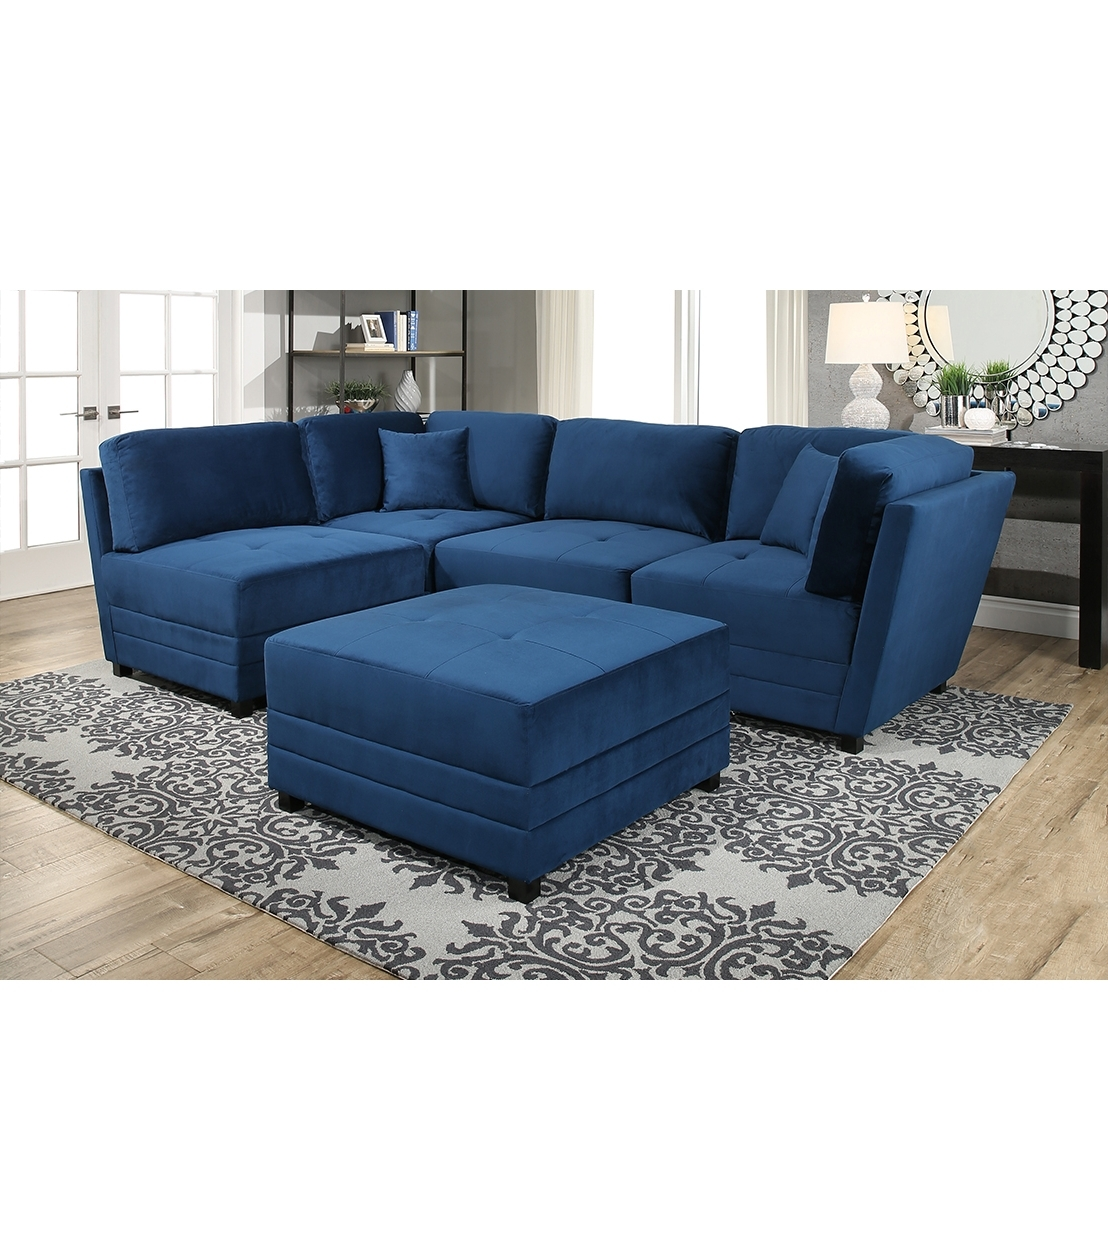 Abbyson Sectional Sofas Intended For Current New Arrivals : Leyla Sectional, Blue (View 6 of 20)